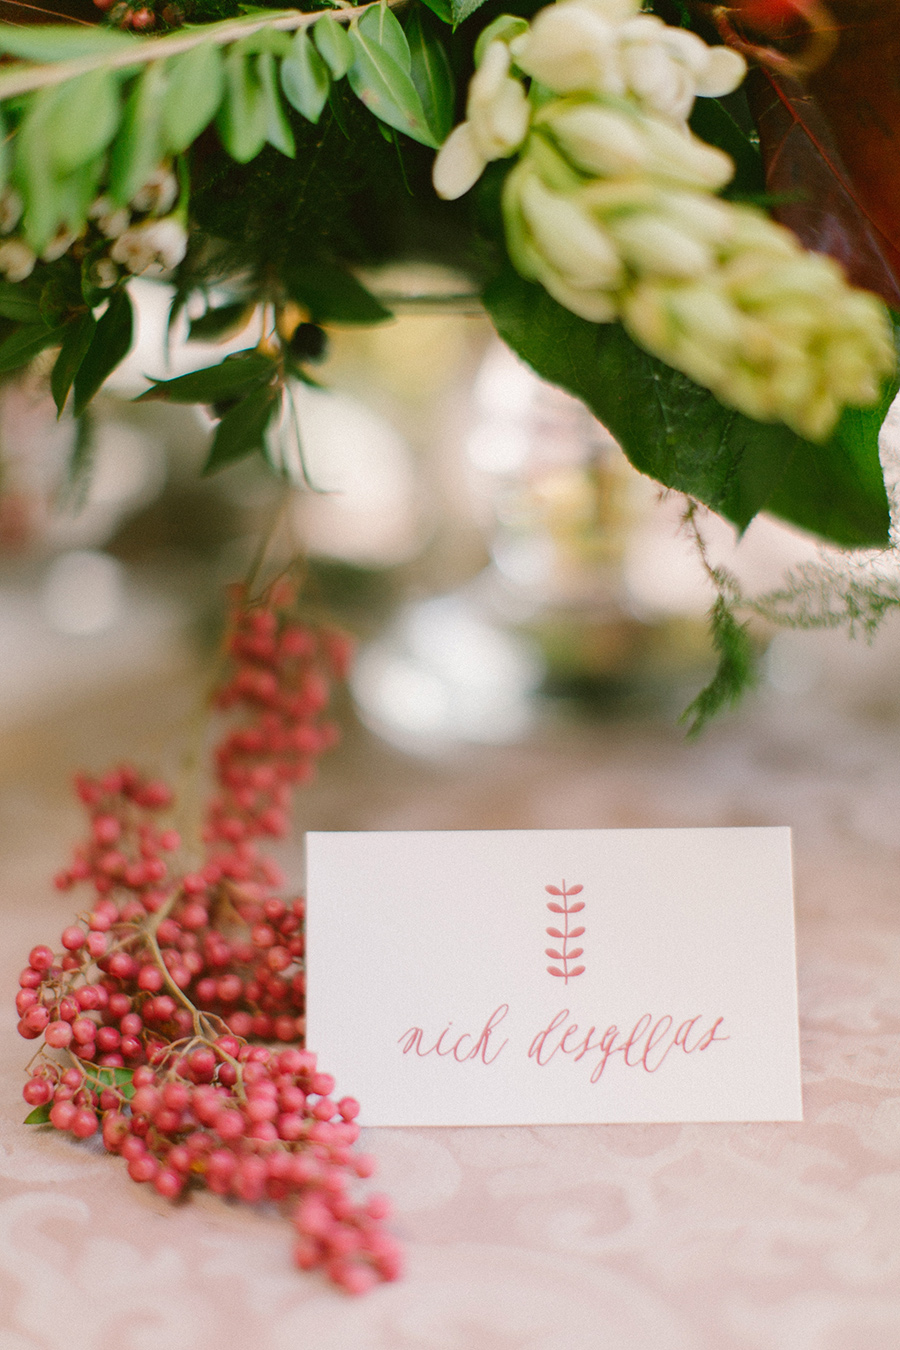 Boho Chic Inspired Wedding Place Cards with burgundy details / styled shoot coordinated by Love 4 Wed / photo by Anna Roussos Photography